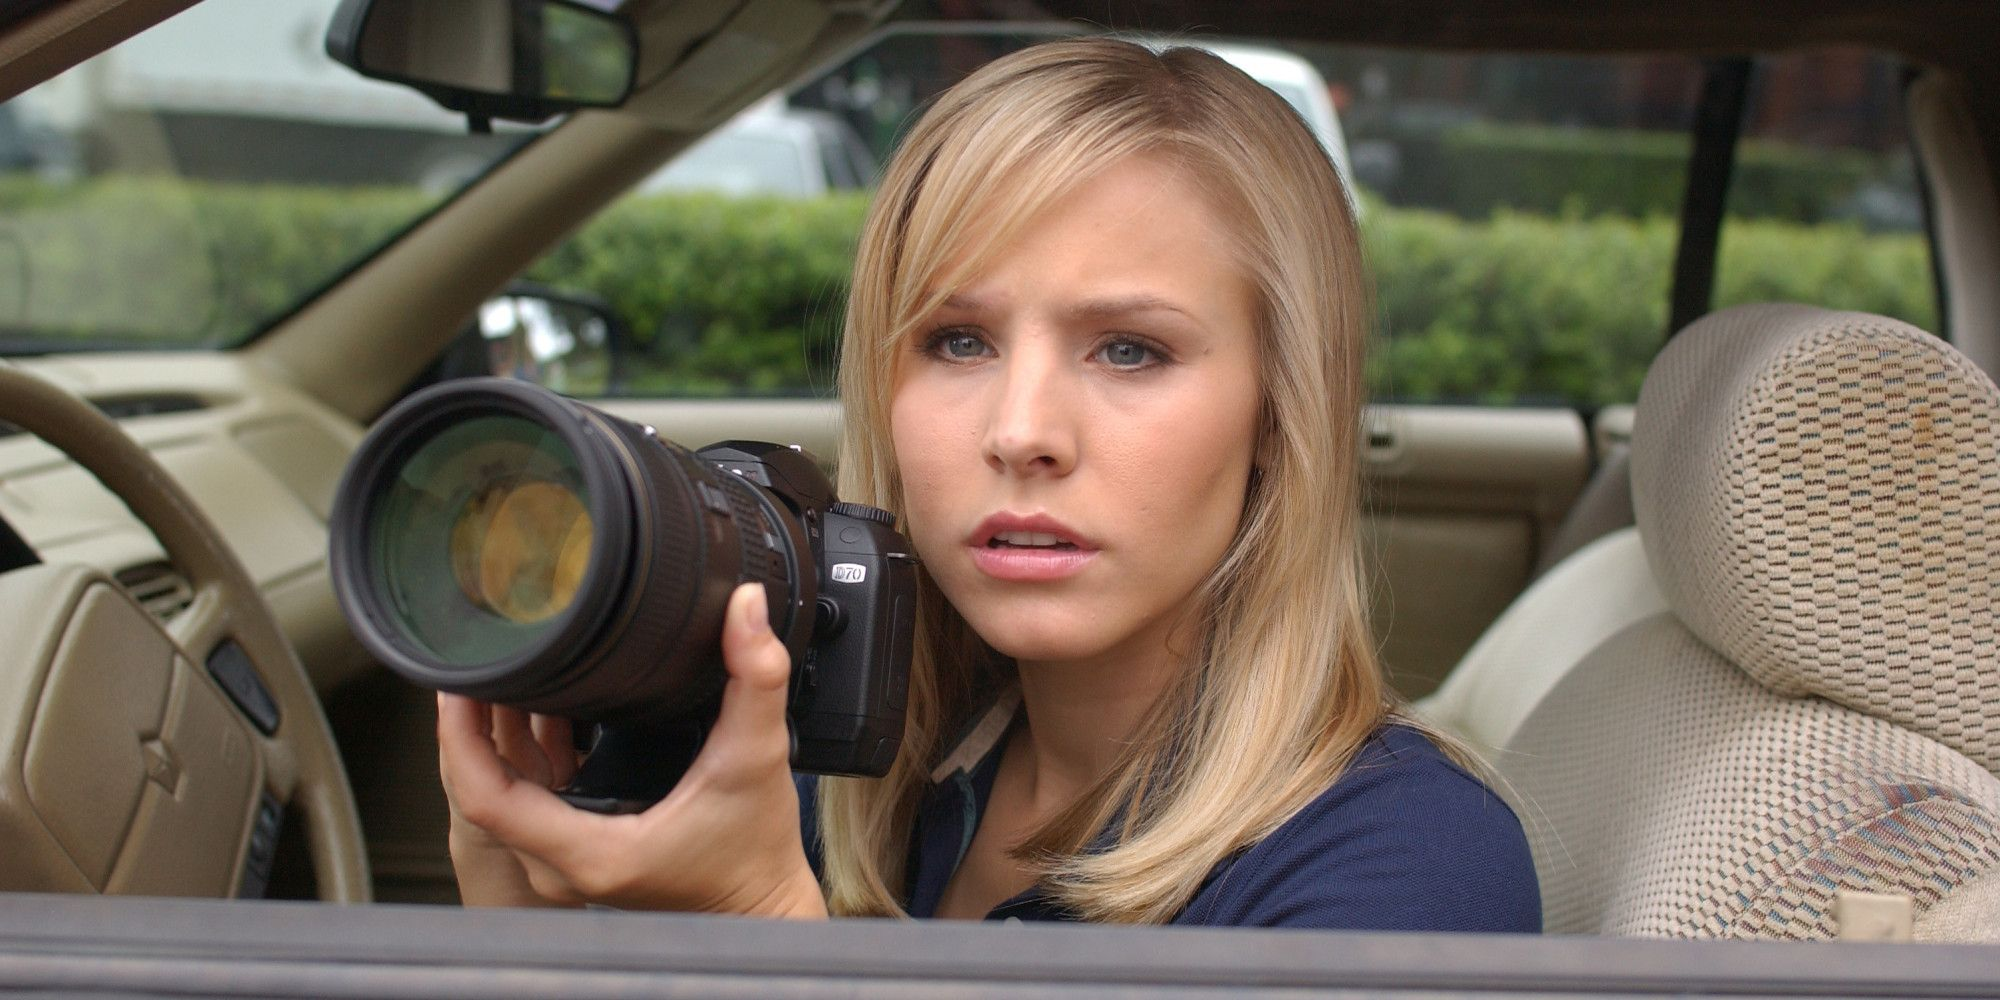 Hulu Working on 'Veronica Mars' Revival Series With Kristen Bell